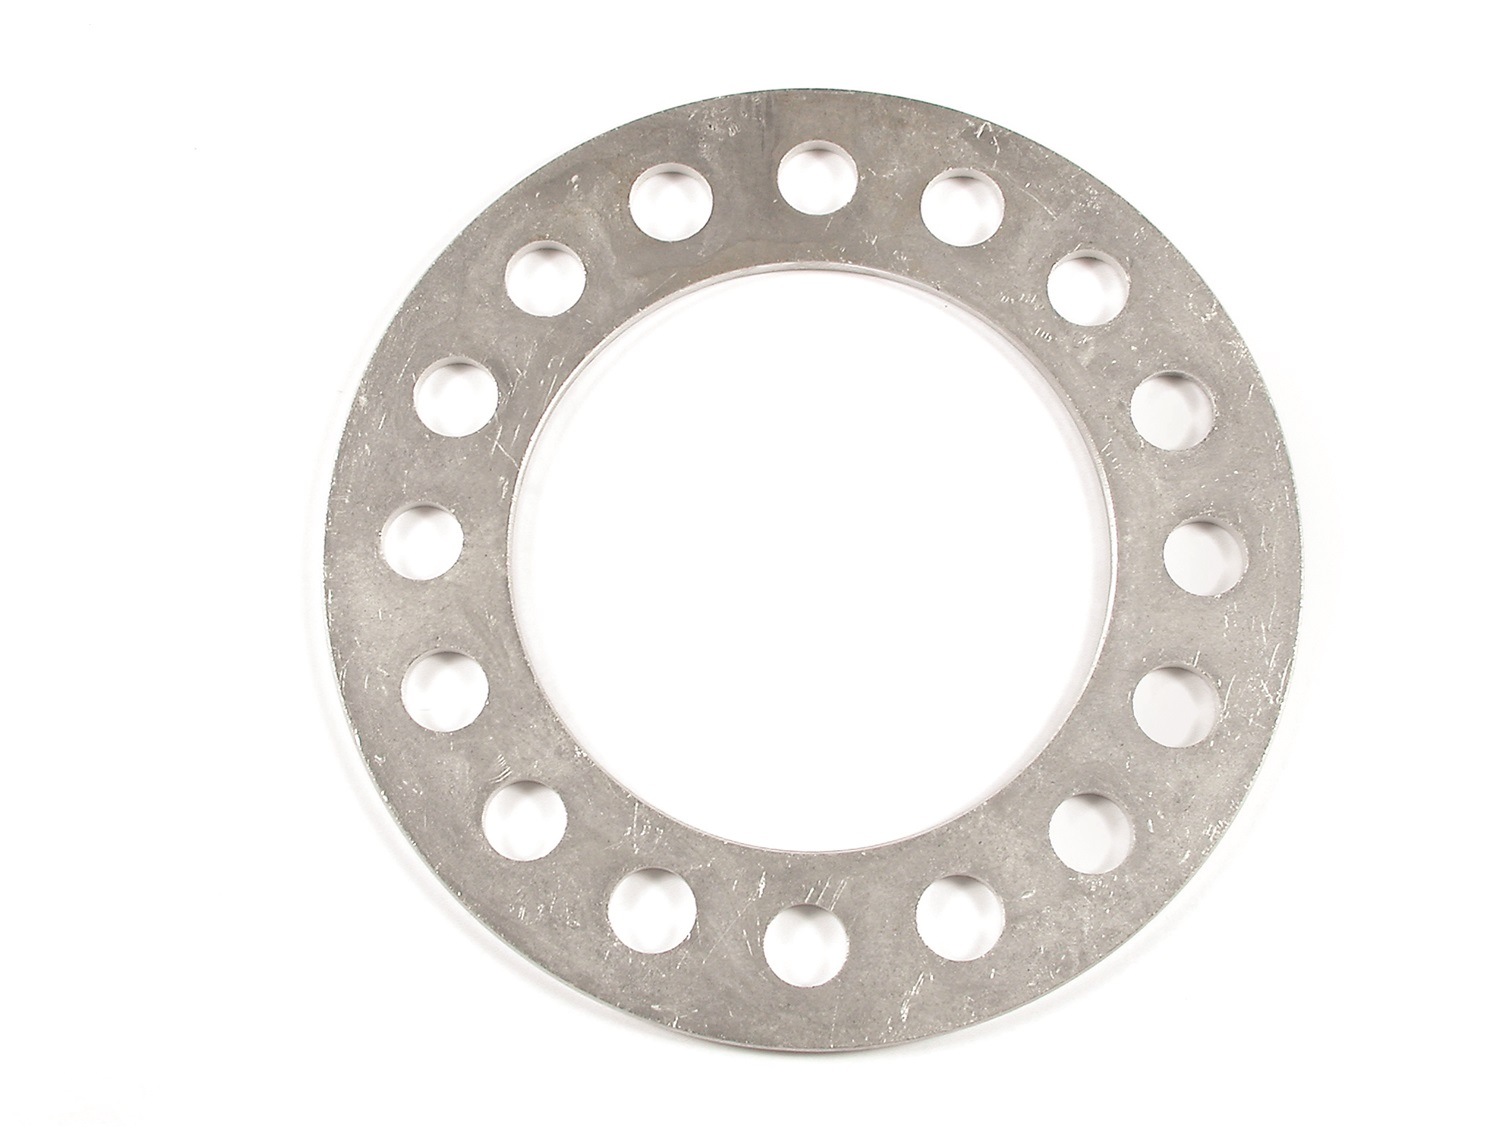 Mr Gasket 2377 Wheel Spacers